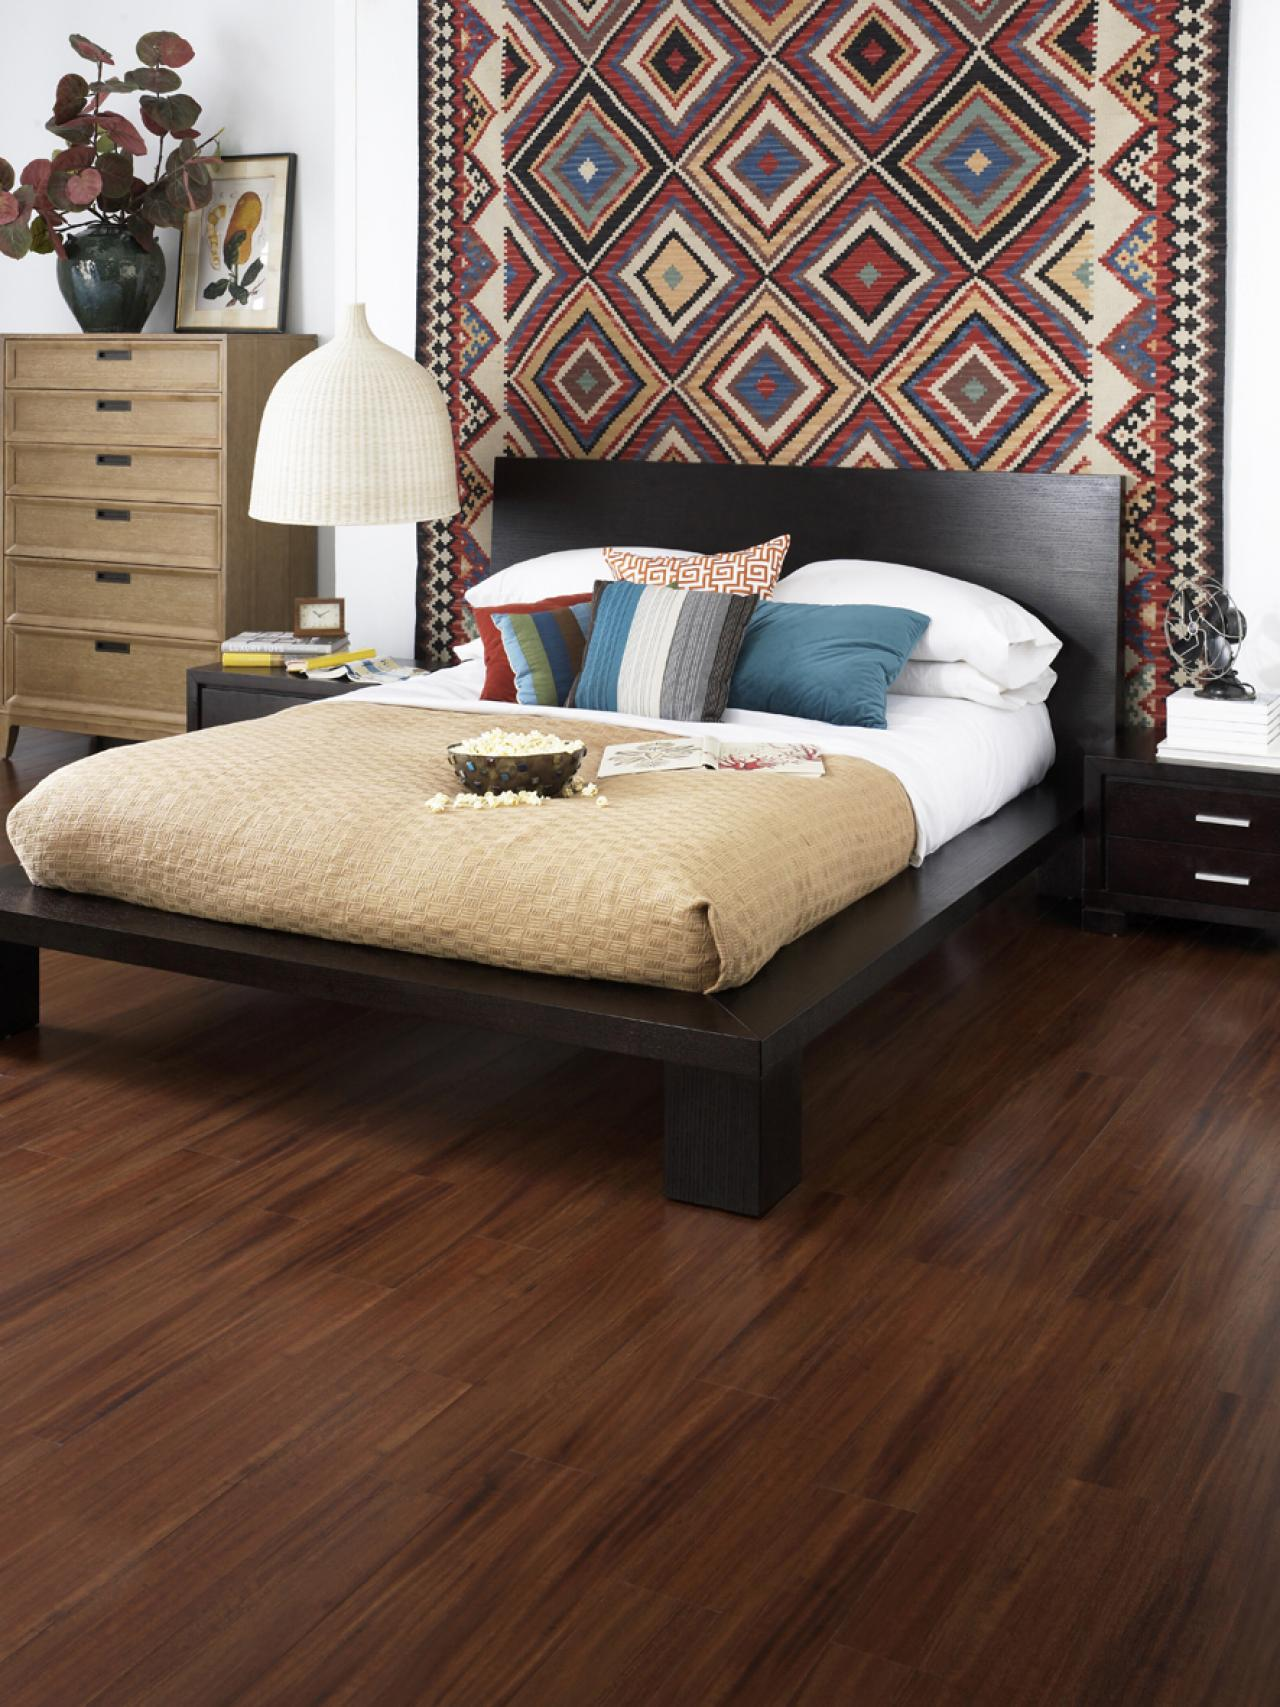 Wood Floor Design Ideas floor design w wood tile how do i clean this paralyzed Bedroom Flooring Ideas And Options Pictures More Hgtv